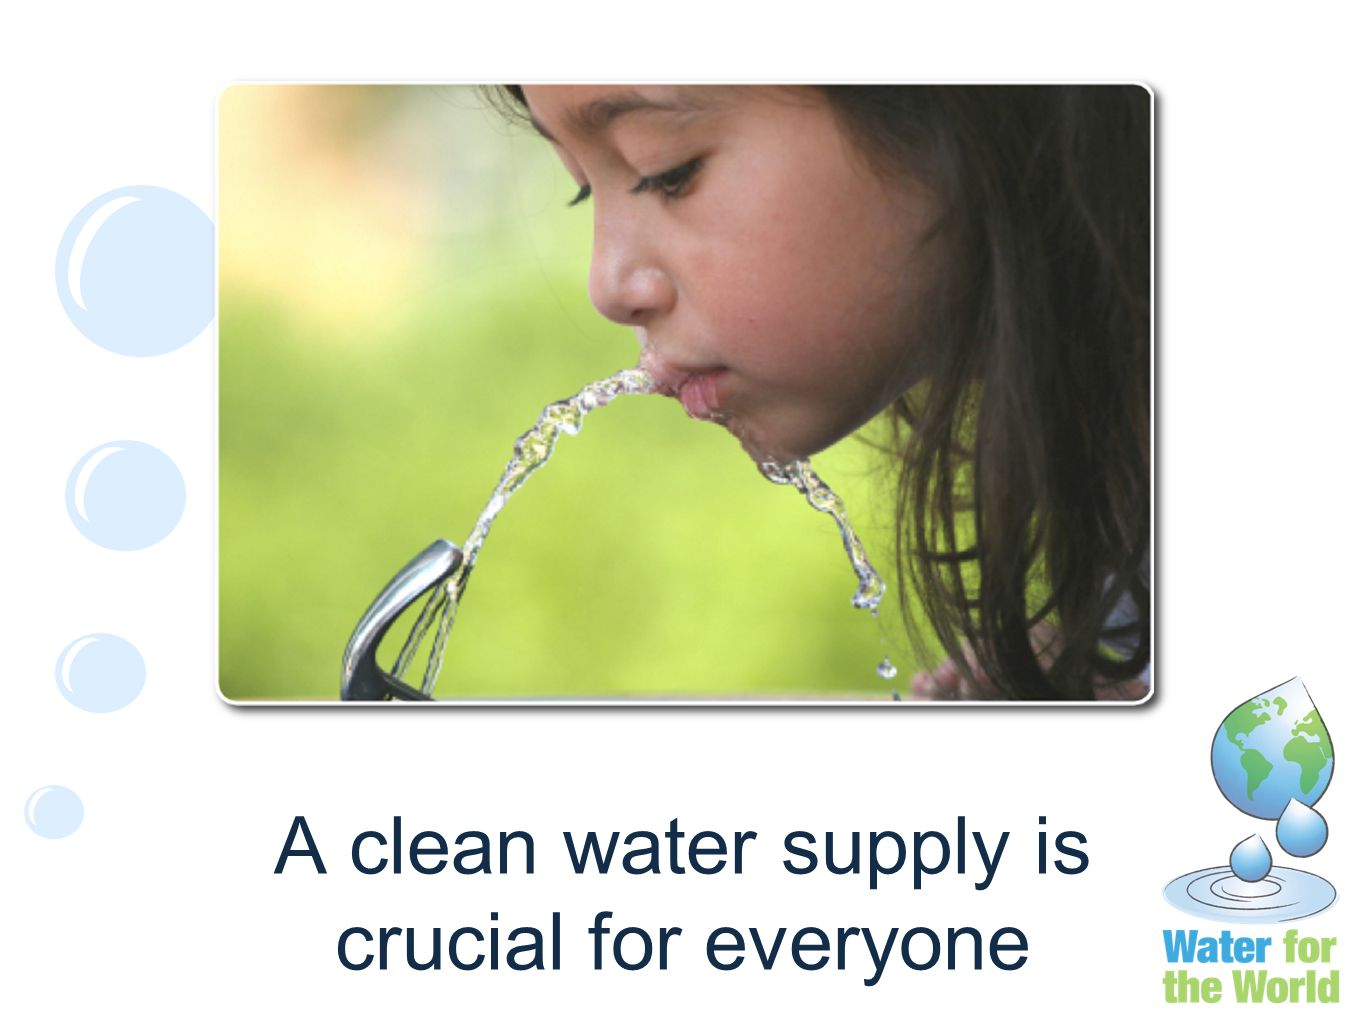 A clean water supply is crucial for everyone